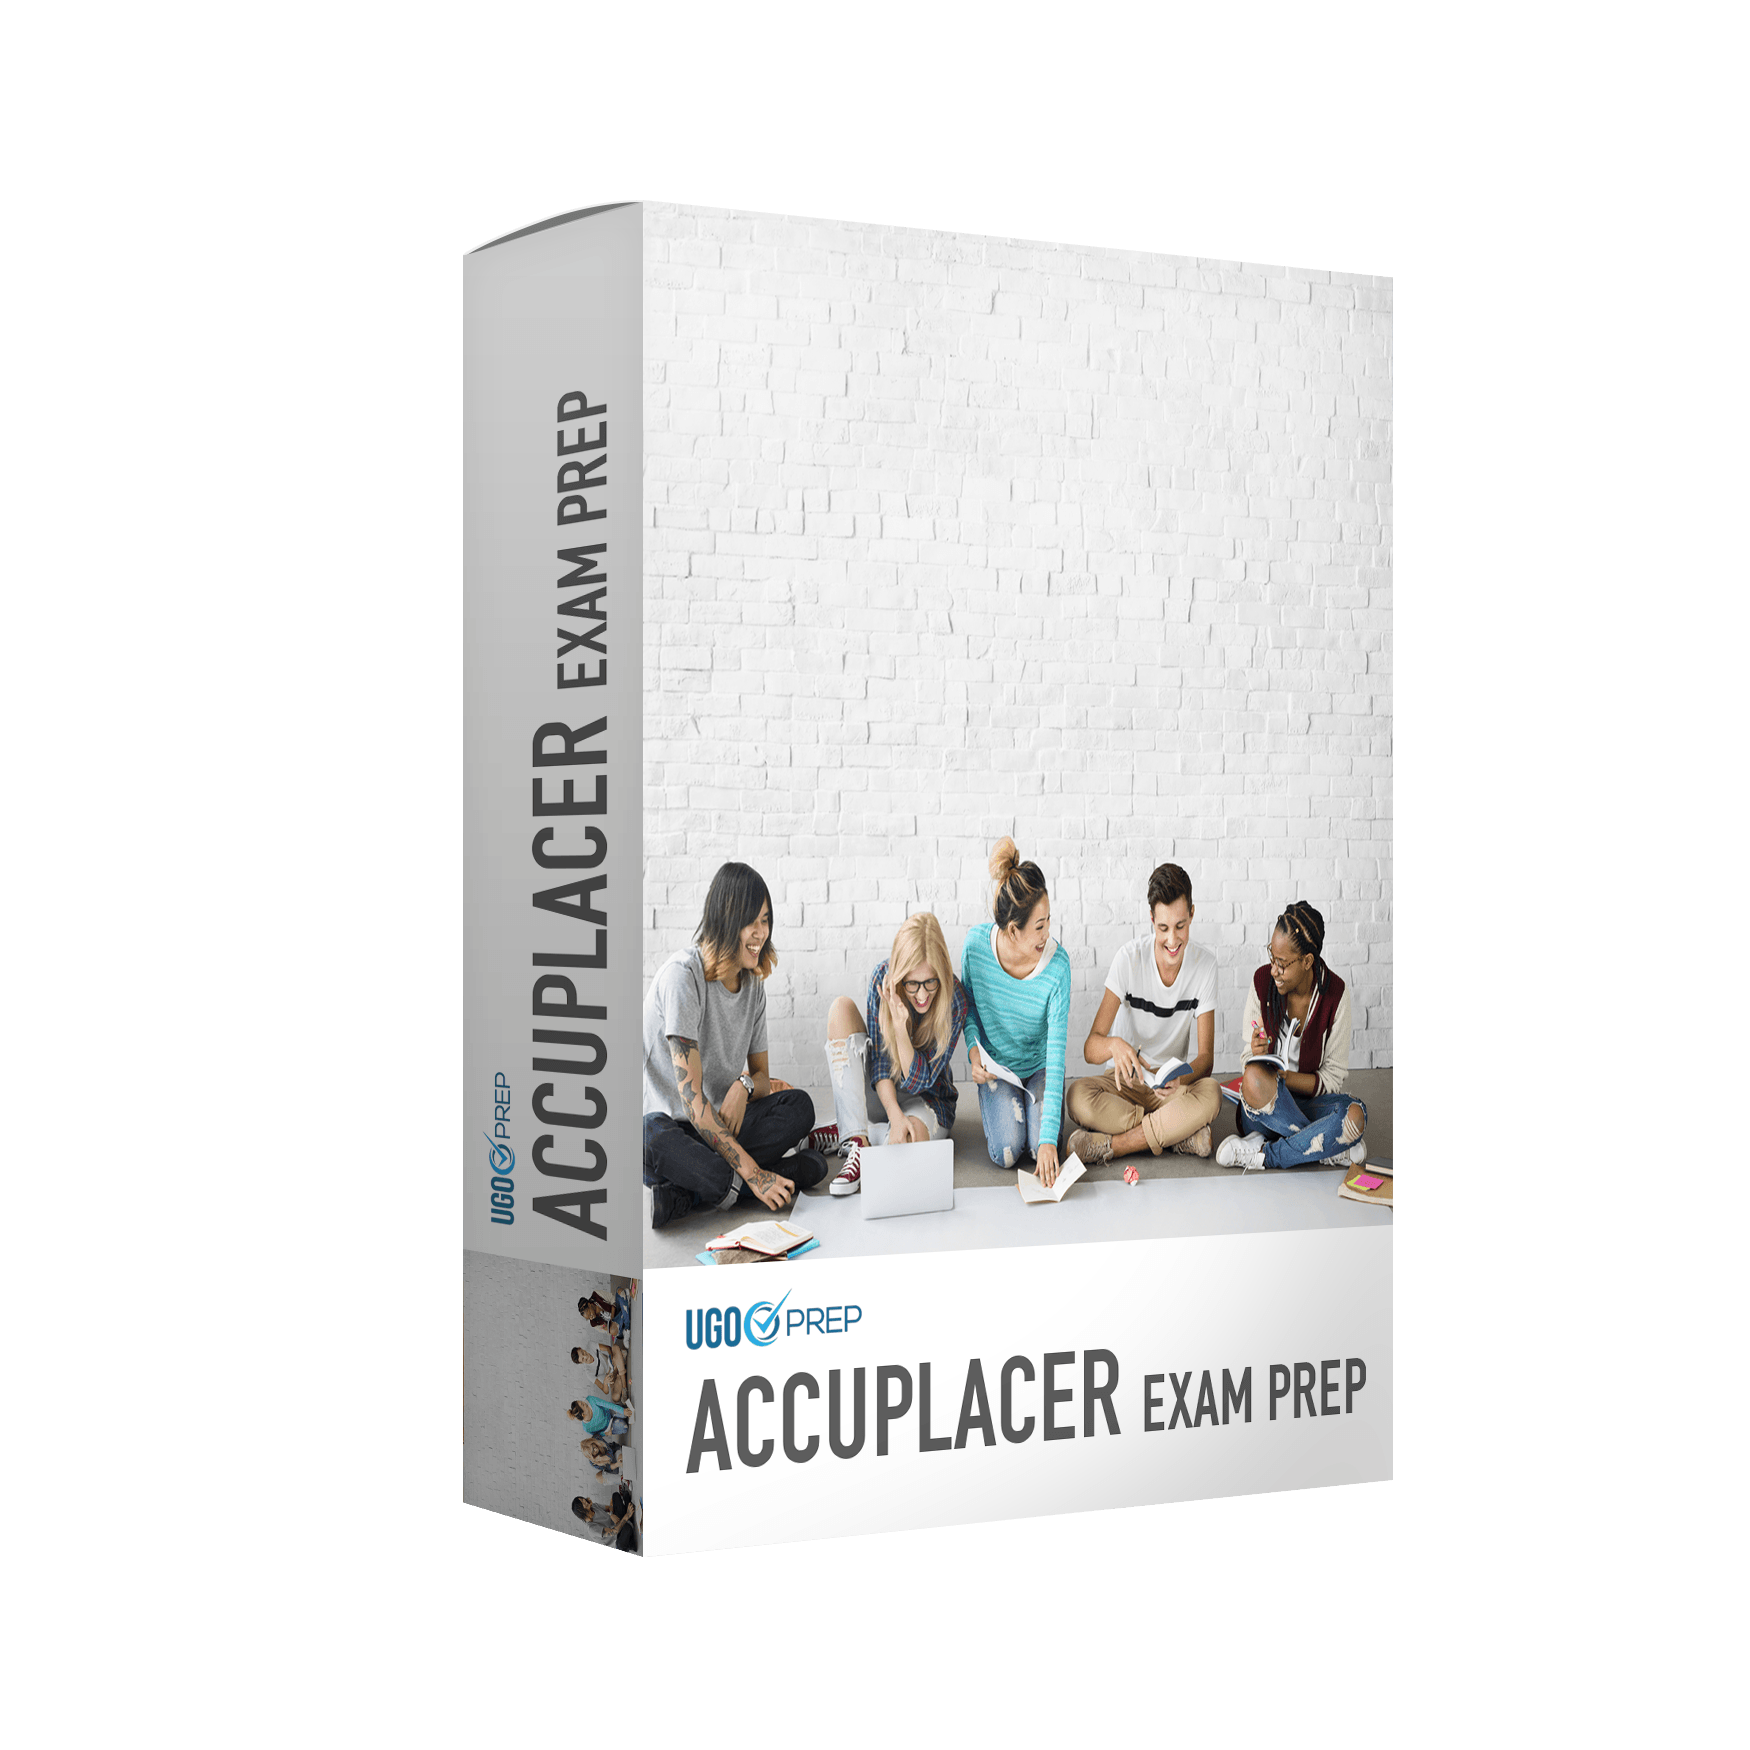 Accuplacer Test Prep, Accuplacer Study Guide, Accuplacer Study App